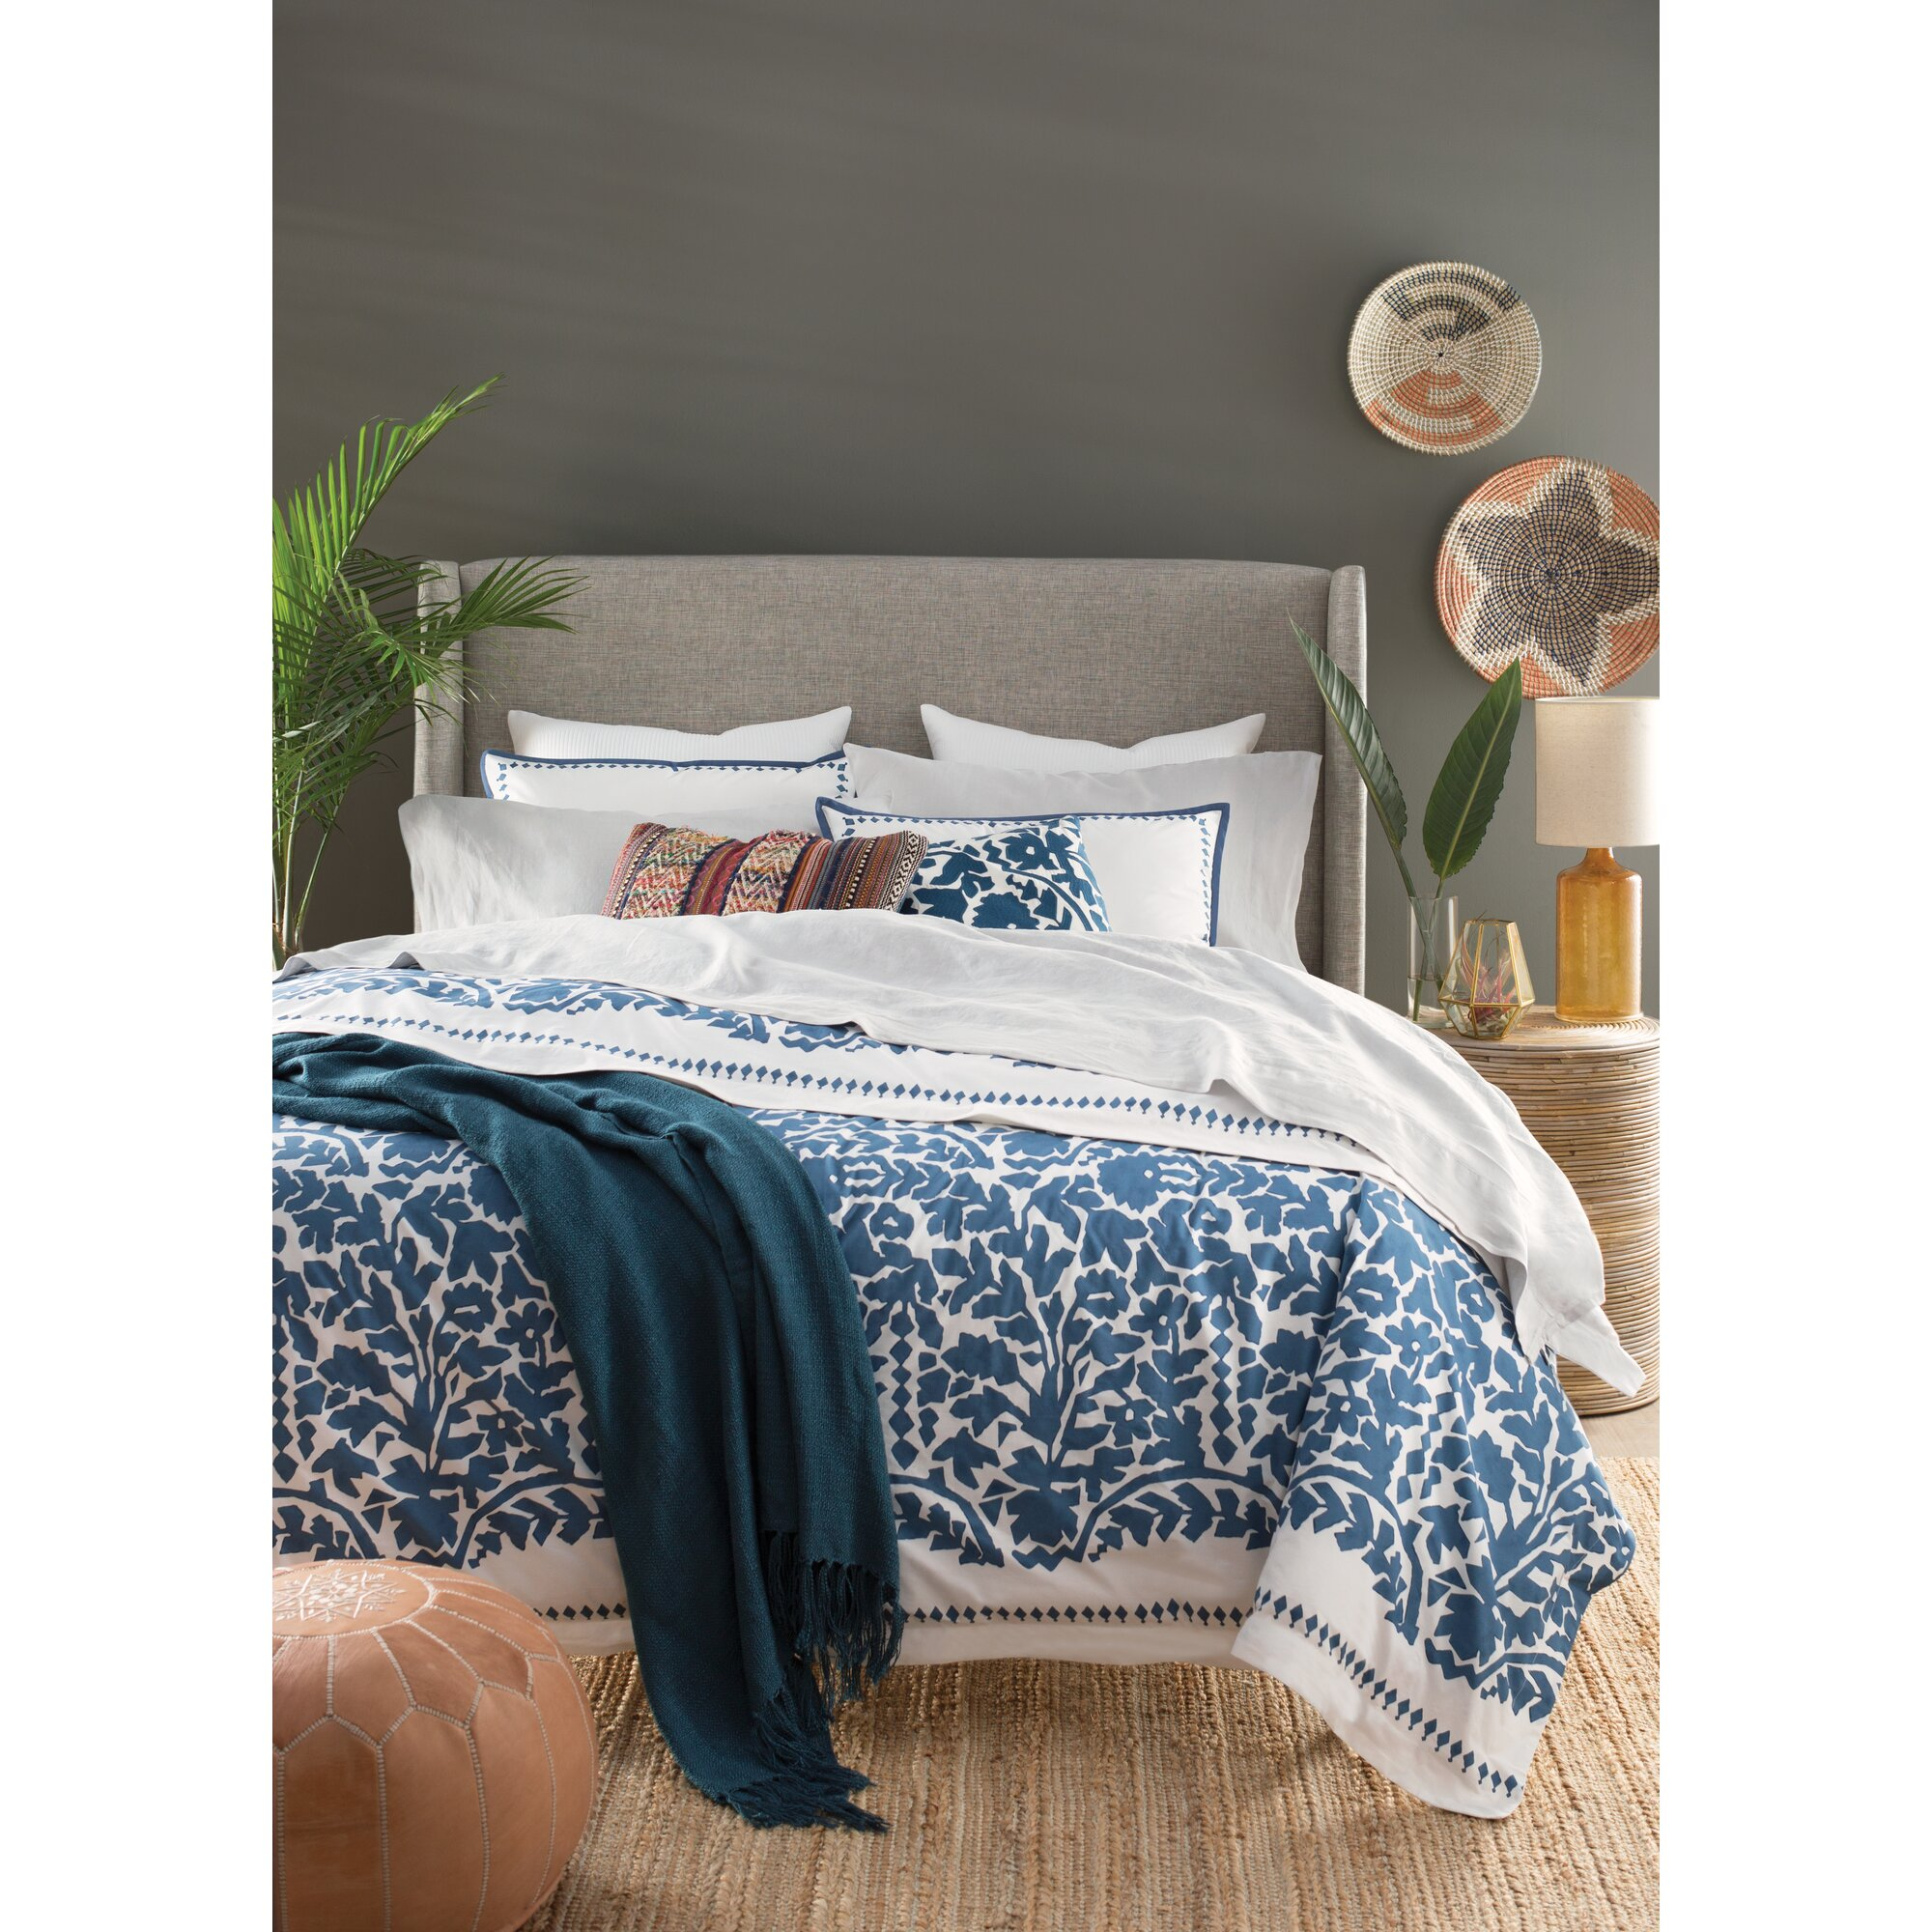 dwell transportation bedding - dwell transportation bedding